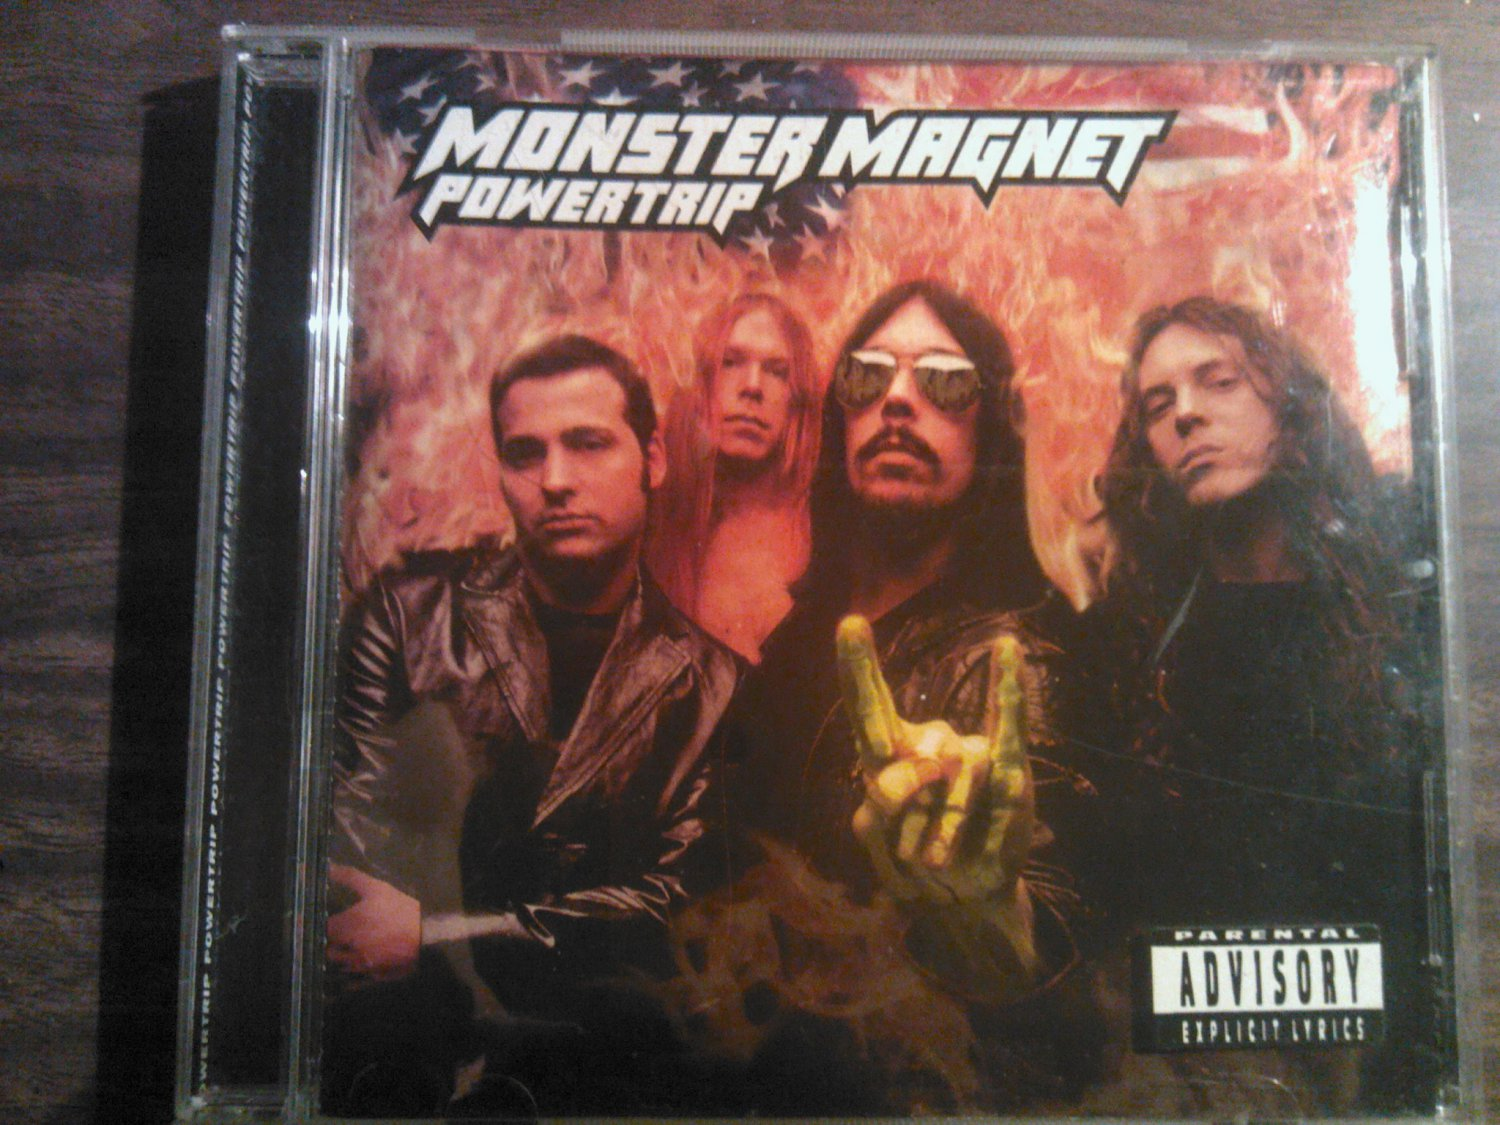 CD MONSTER MAGNET Powertrip space lord SALE